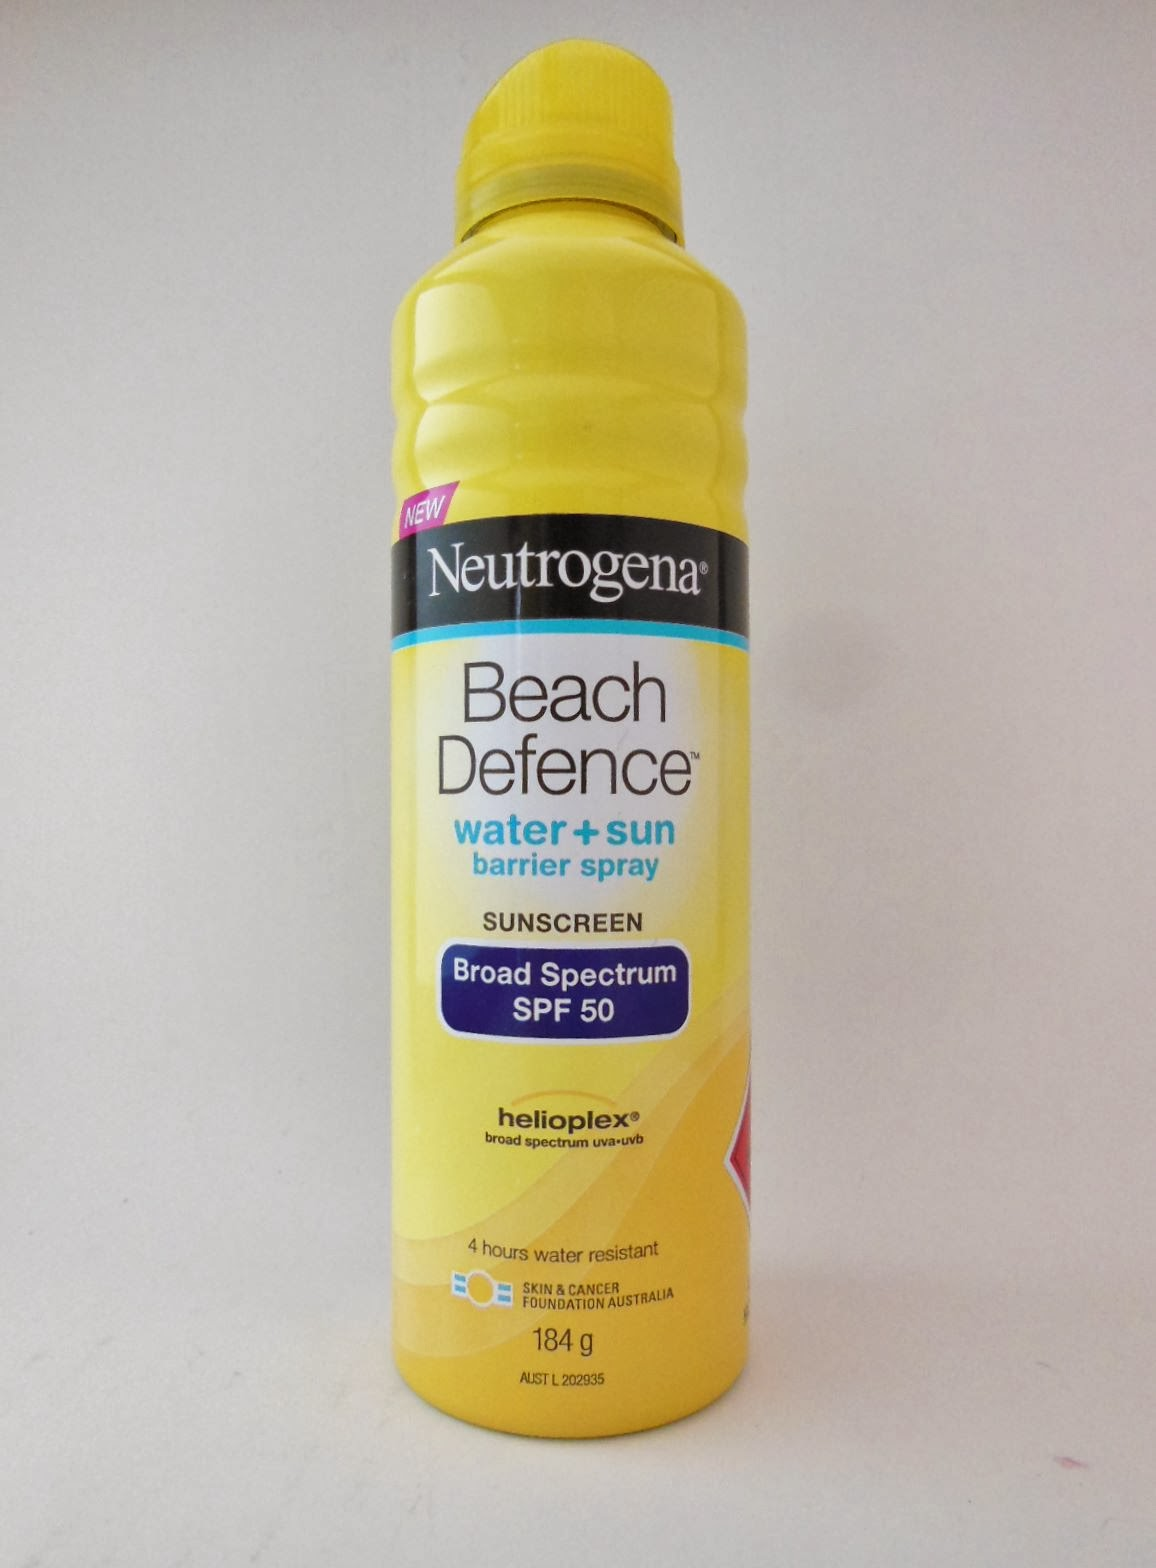 Neutrogena Beach Defence Review